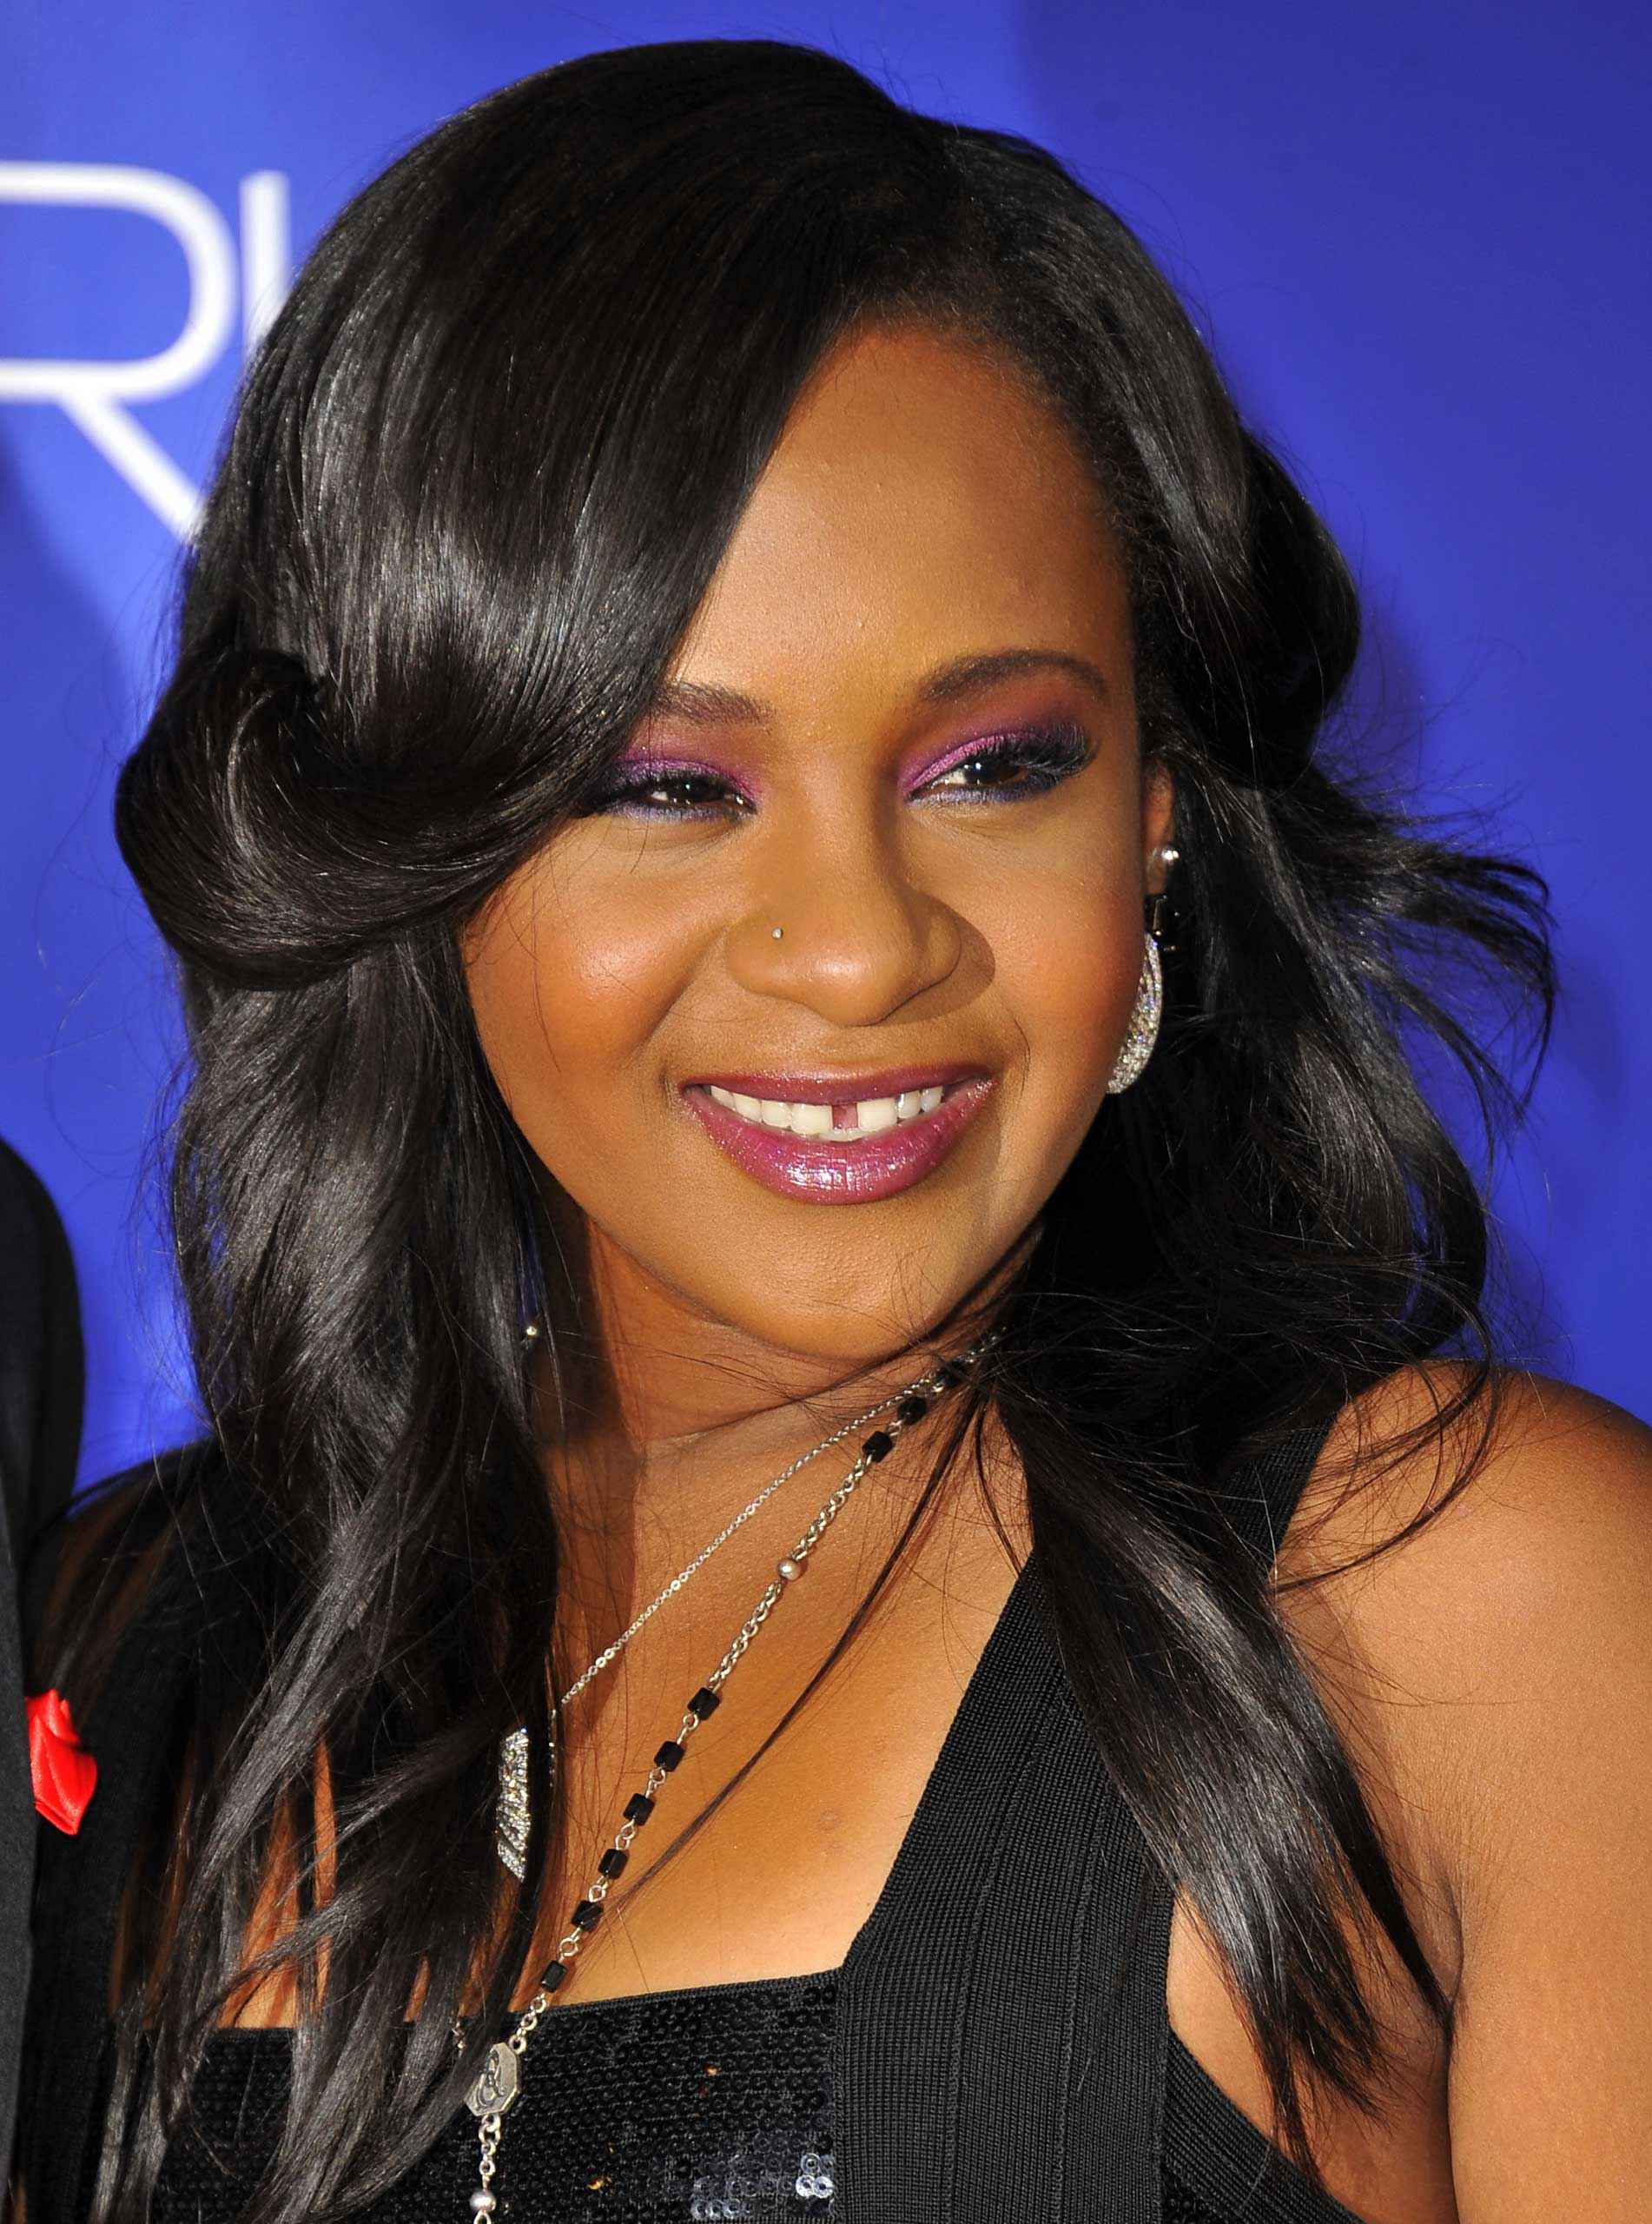 Bobbi Kristina Brown attends the Los Angeles premiere of Sparkle at Grauman's Chinese Theatre in Hollywood on Aug. 16, 2012